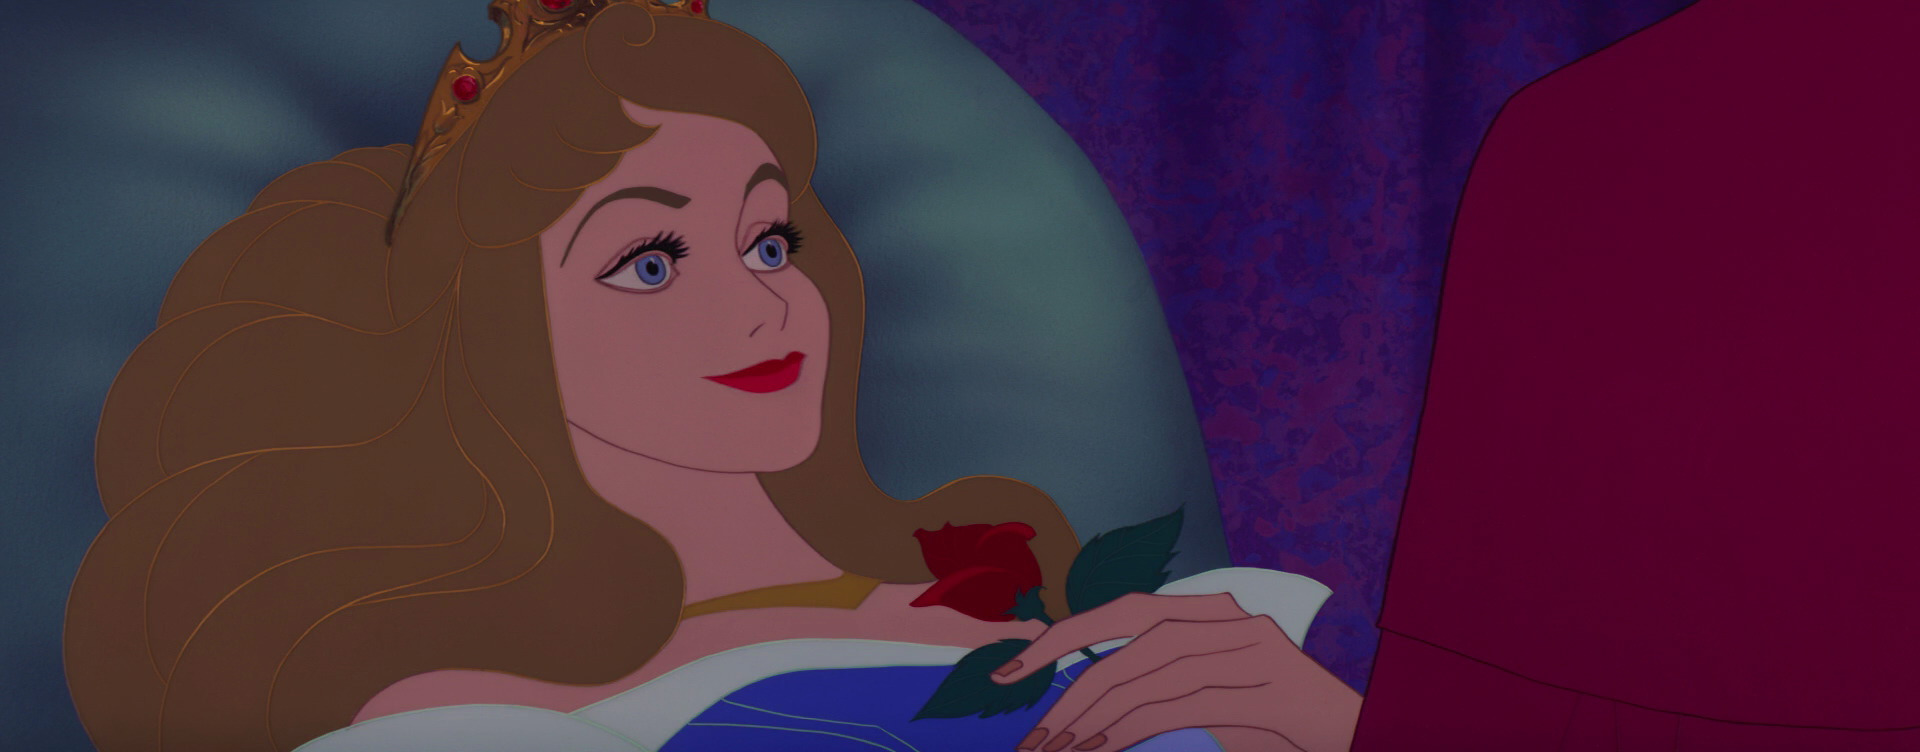 Hair color not hair style poll results disney princess fanpop - Disney Princess Which Disney Princess Has The Best Eyes